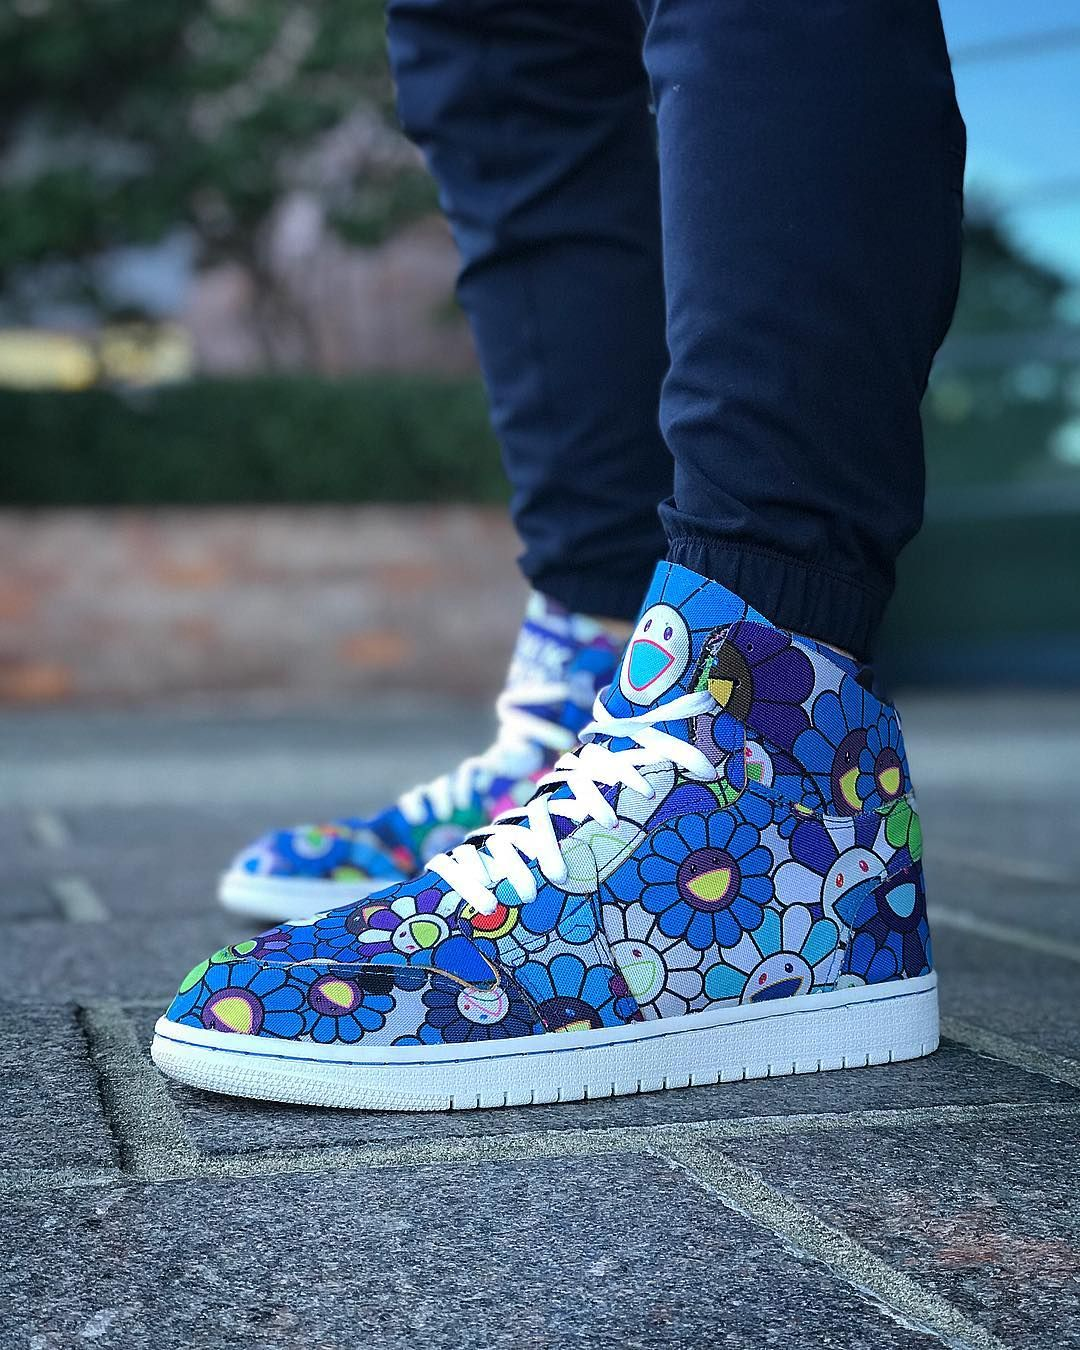 save off 30501 fc7f6 takashipom x complexcon AJ1 MADE BY detroitcustomslides THOUGHTS!  ✅COP or DROP❎ LET ME KNOW👇🏽👇🏽 📸 by johnnyskicks 👊🏼👊🏼 RoyalKicks…